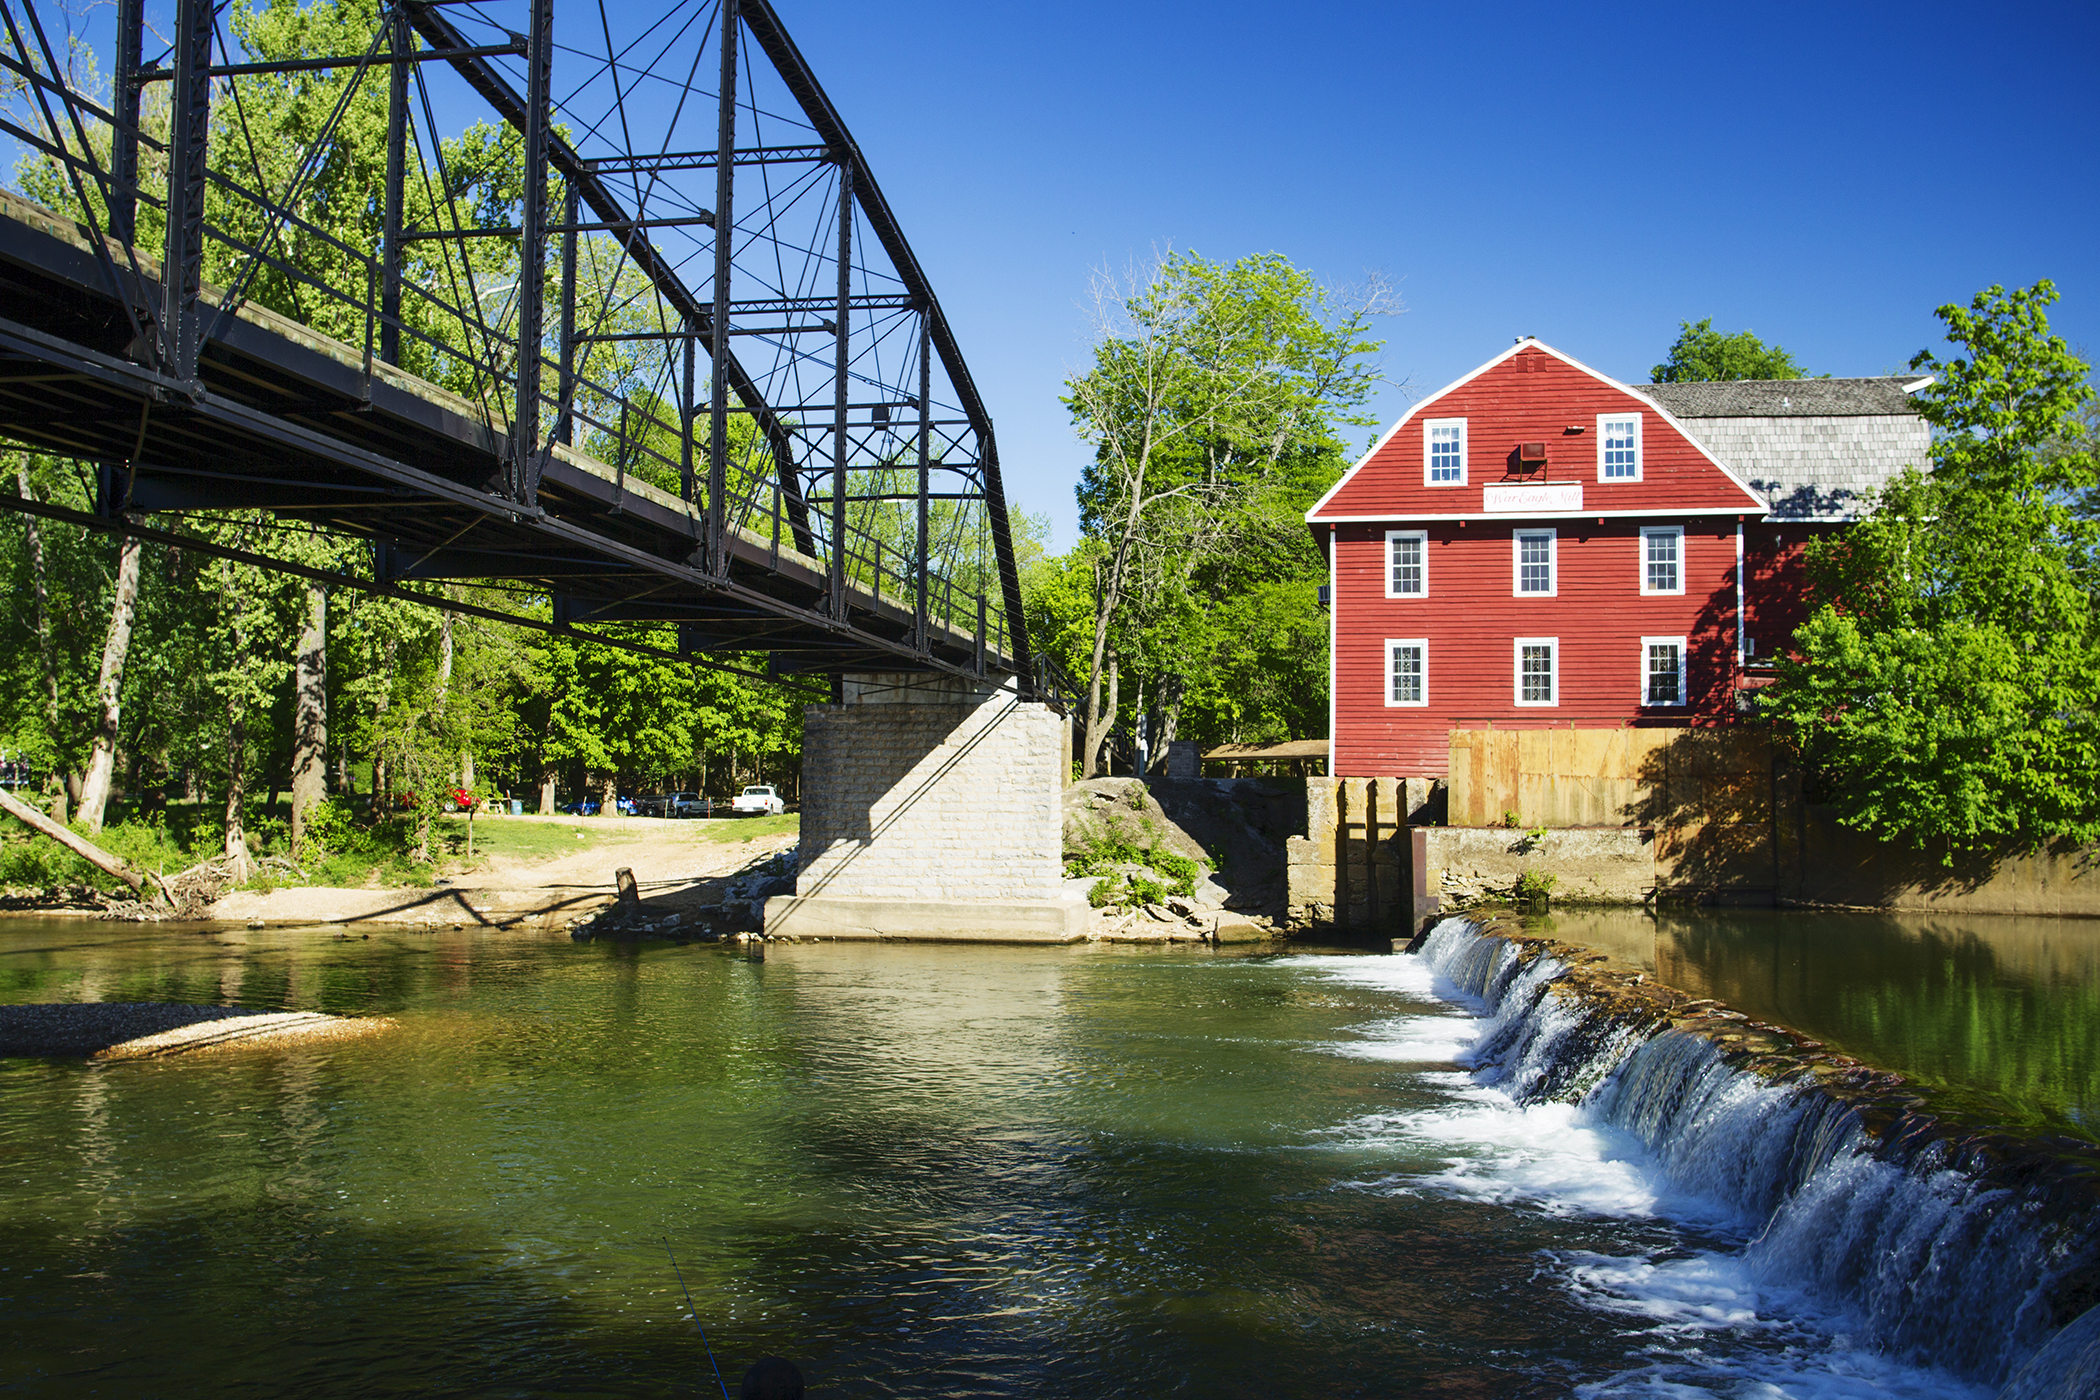 Rogers, Arkansas. The steel-truss War Eagle  bridge, built in 1907, is listed on the National Register of Historic Places.